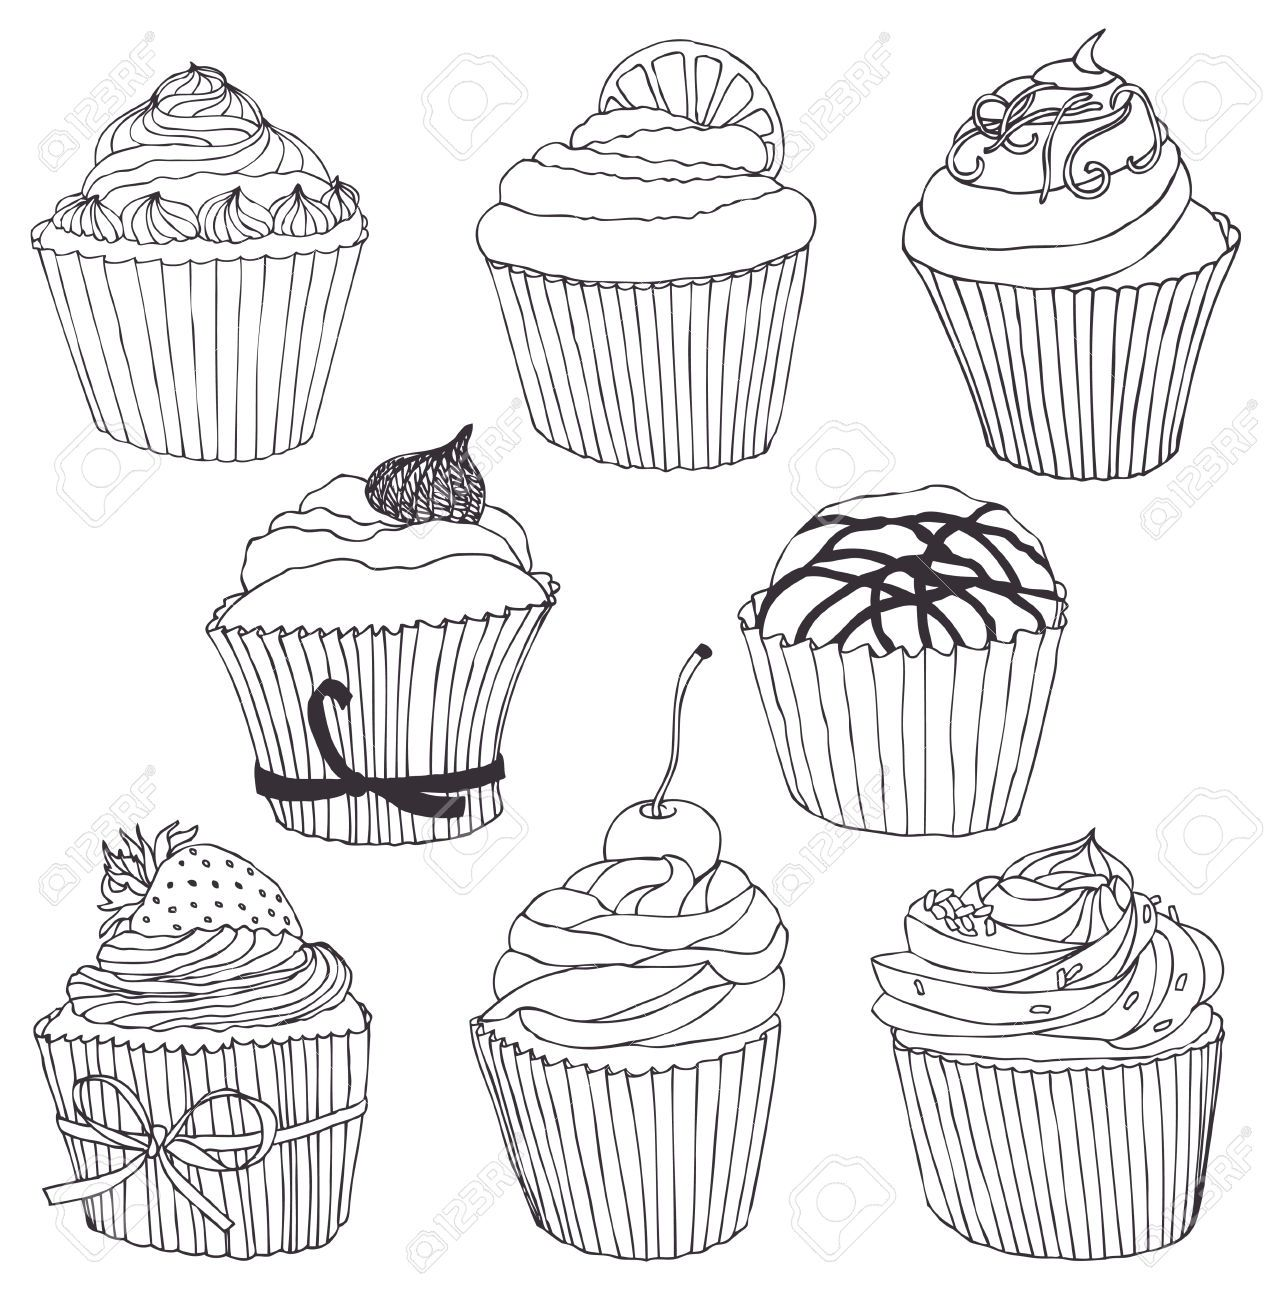 Cupcake Drawing Black And White Google Search Dessin De